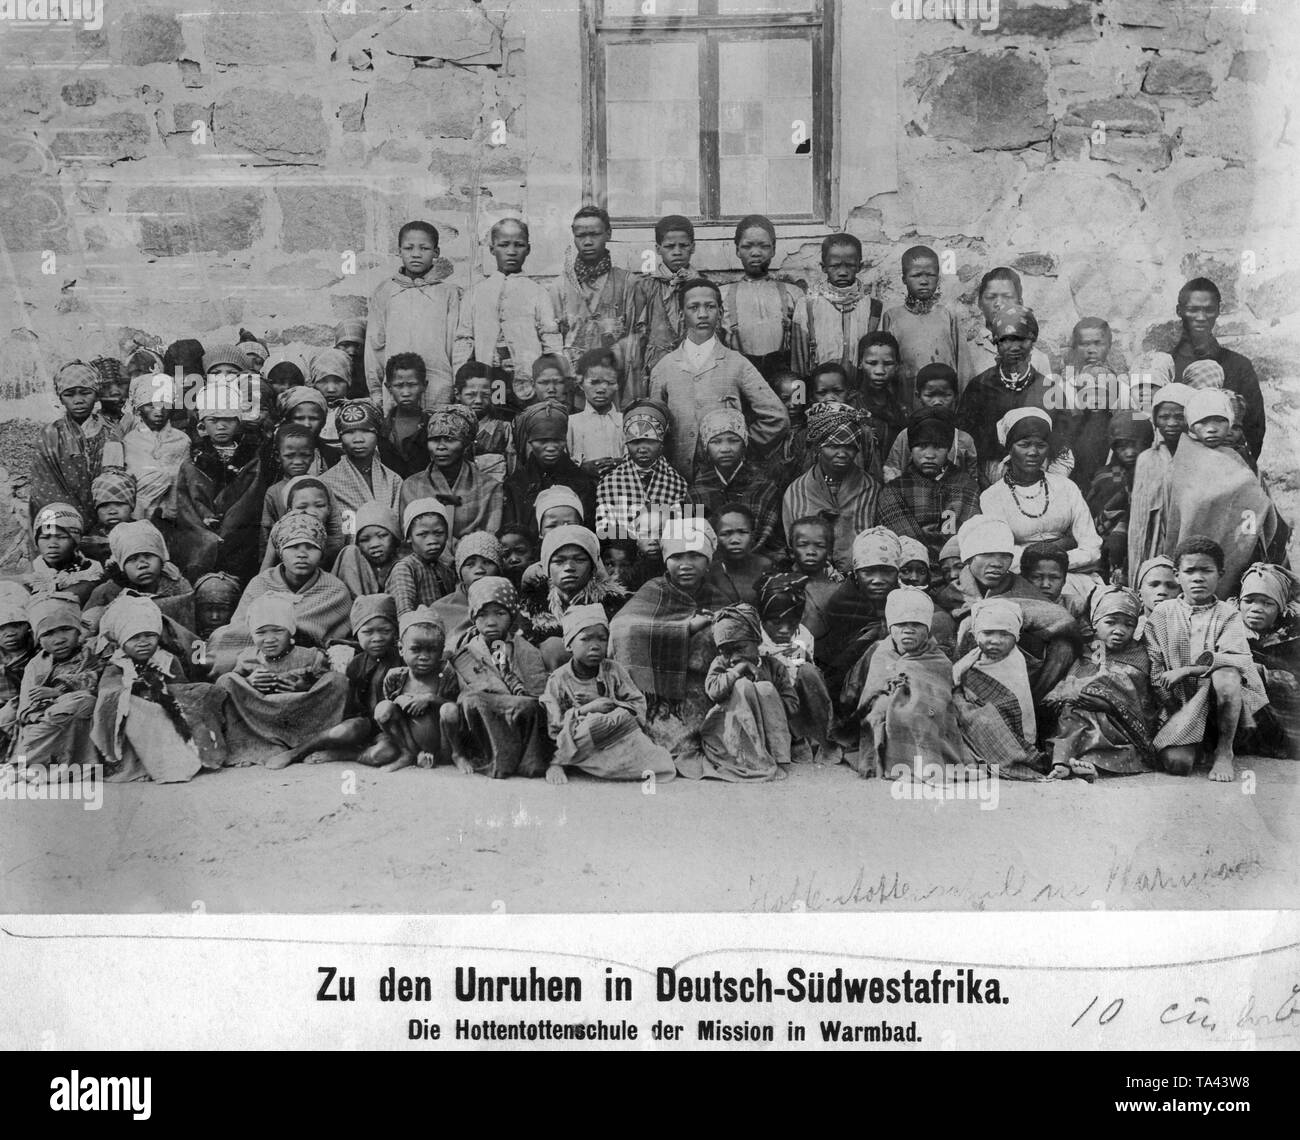 Hottentot school class in front of a mission school in Warmbad, German Southwest Africa. - Stock Image